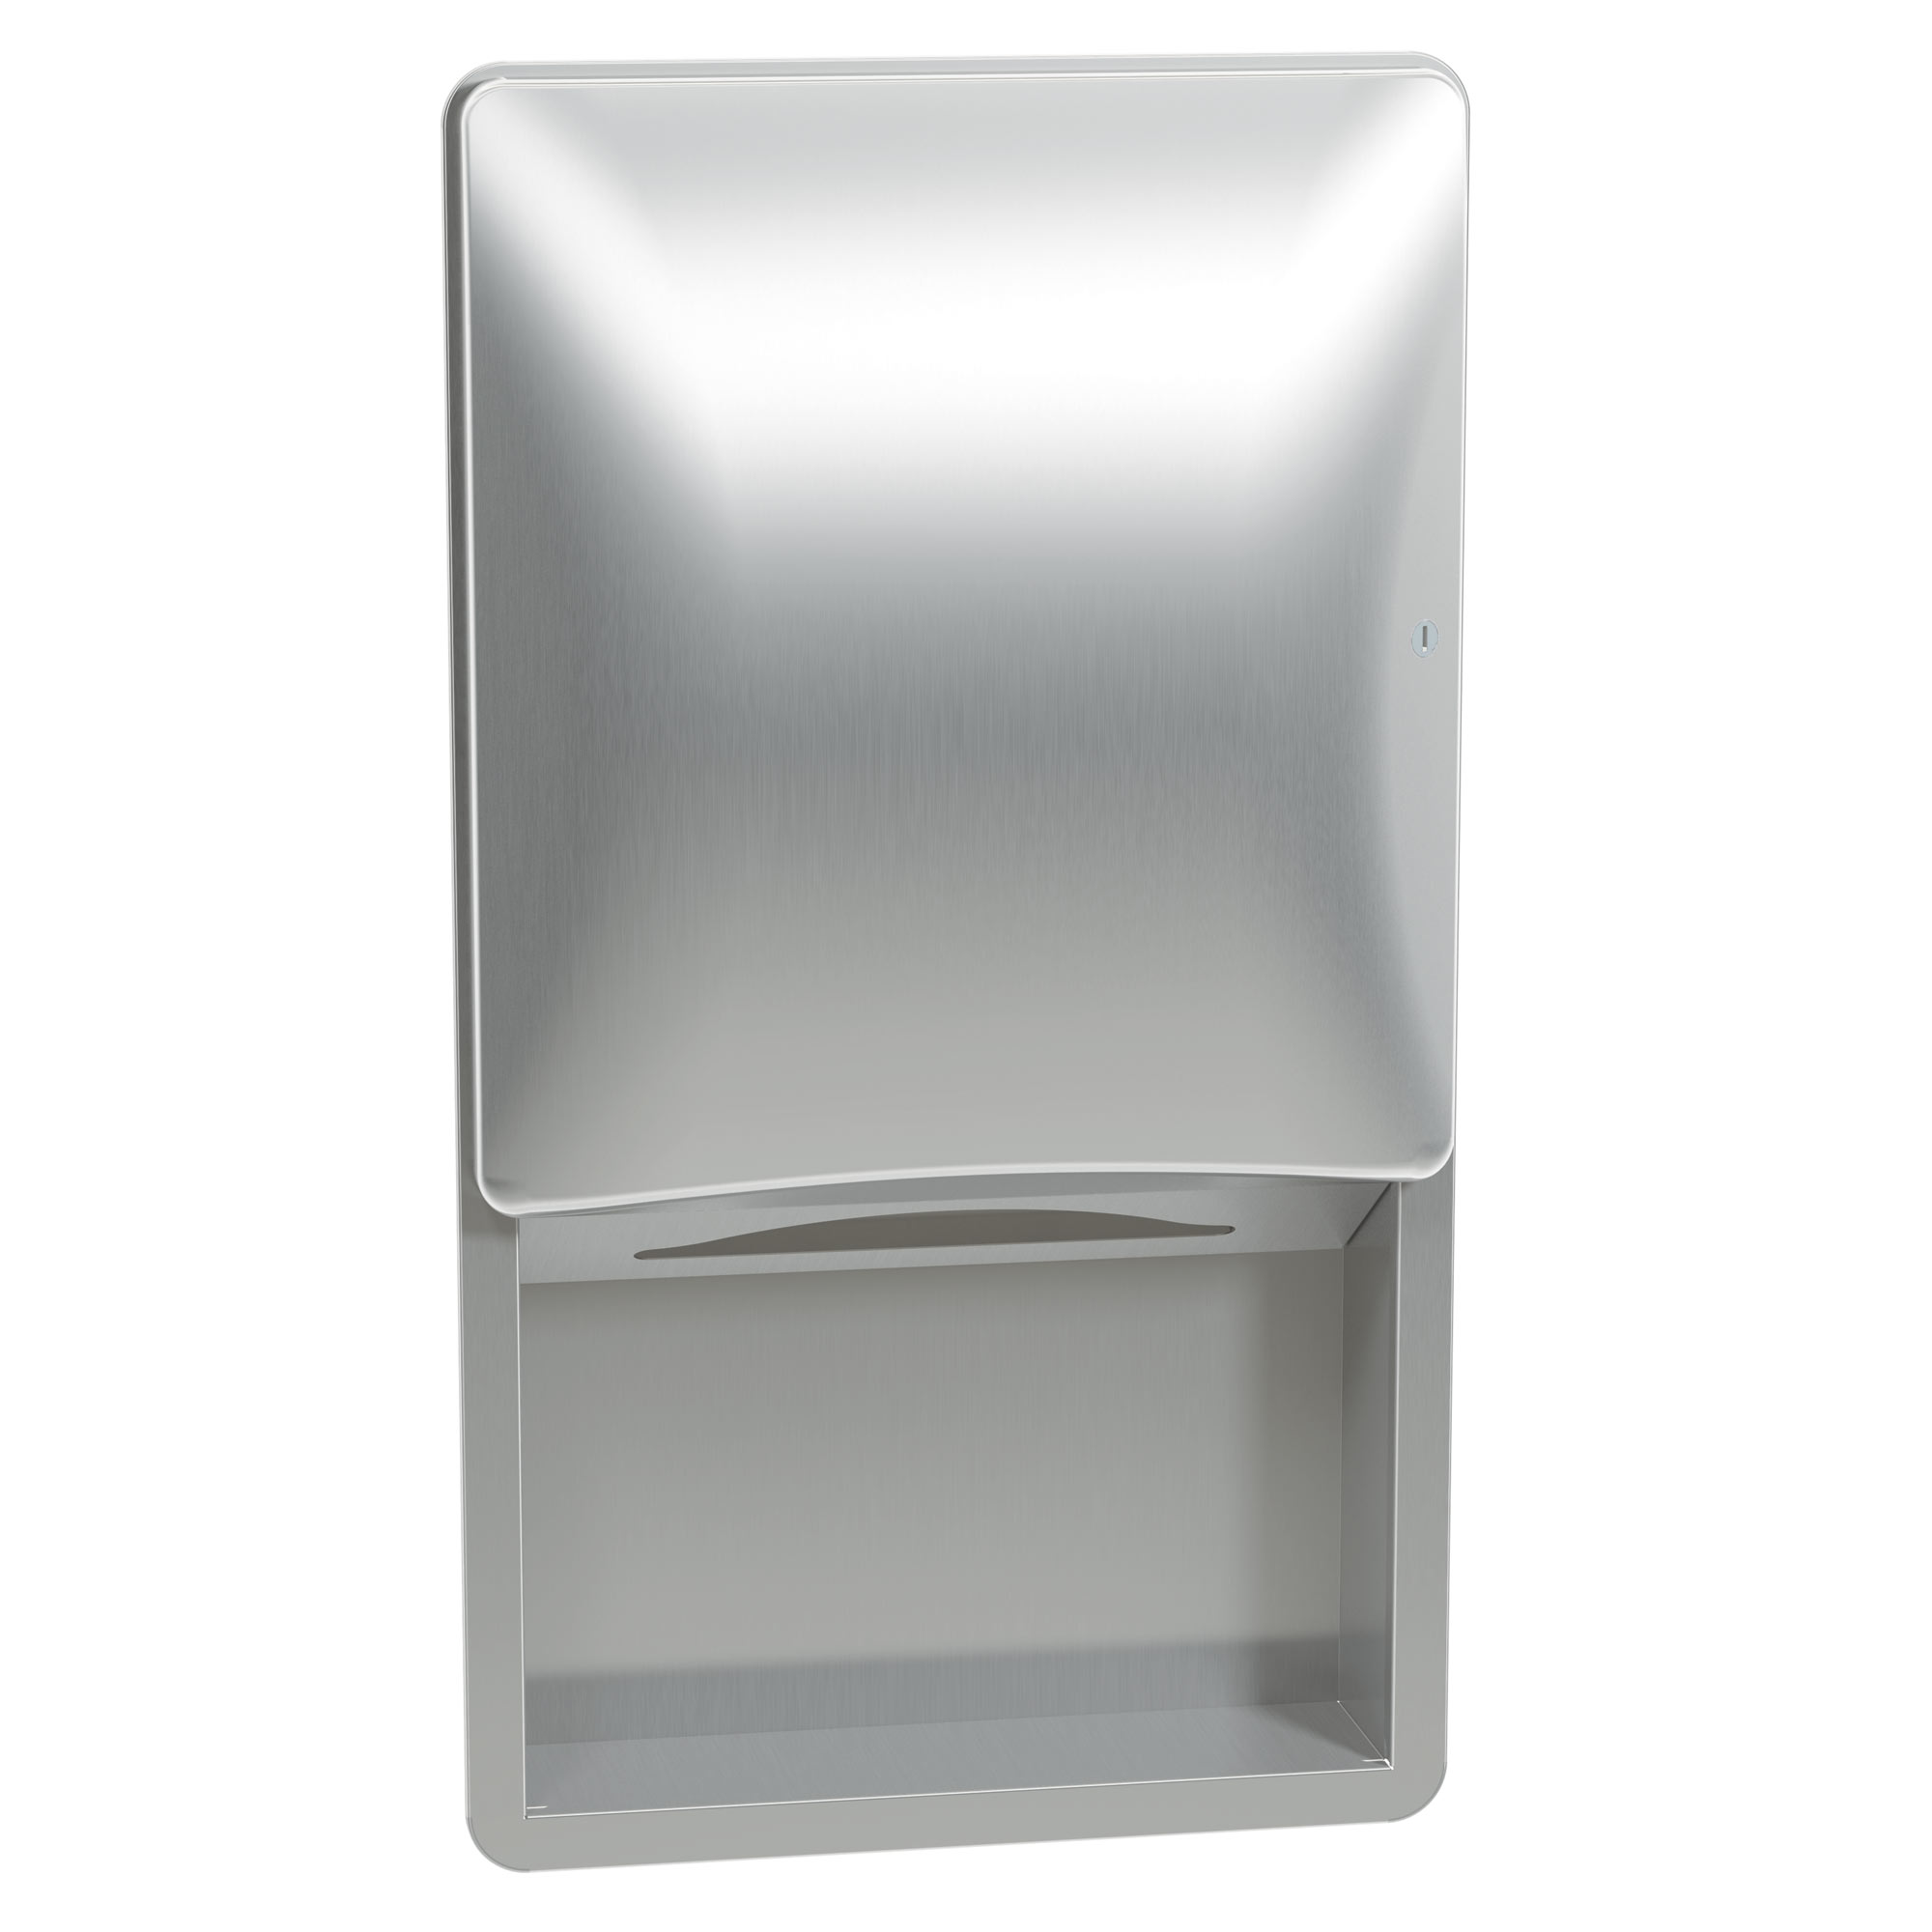 Bradley 2A00-10 Semi-Recessed Folded Towel Dispenser